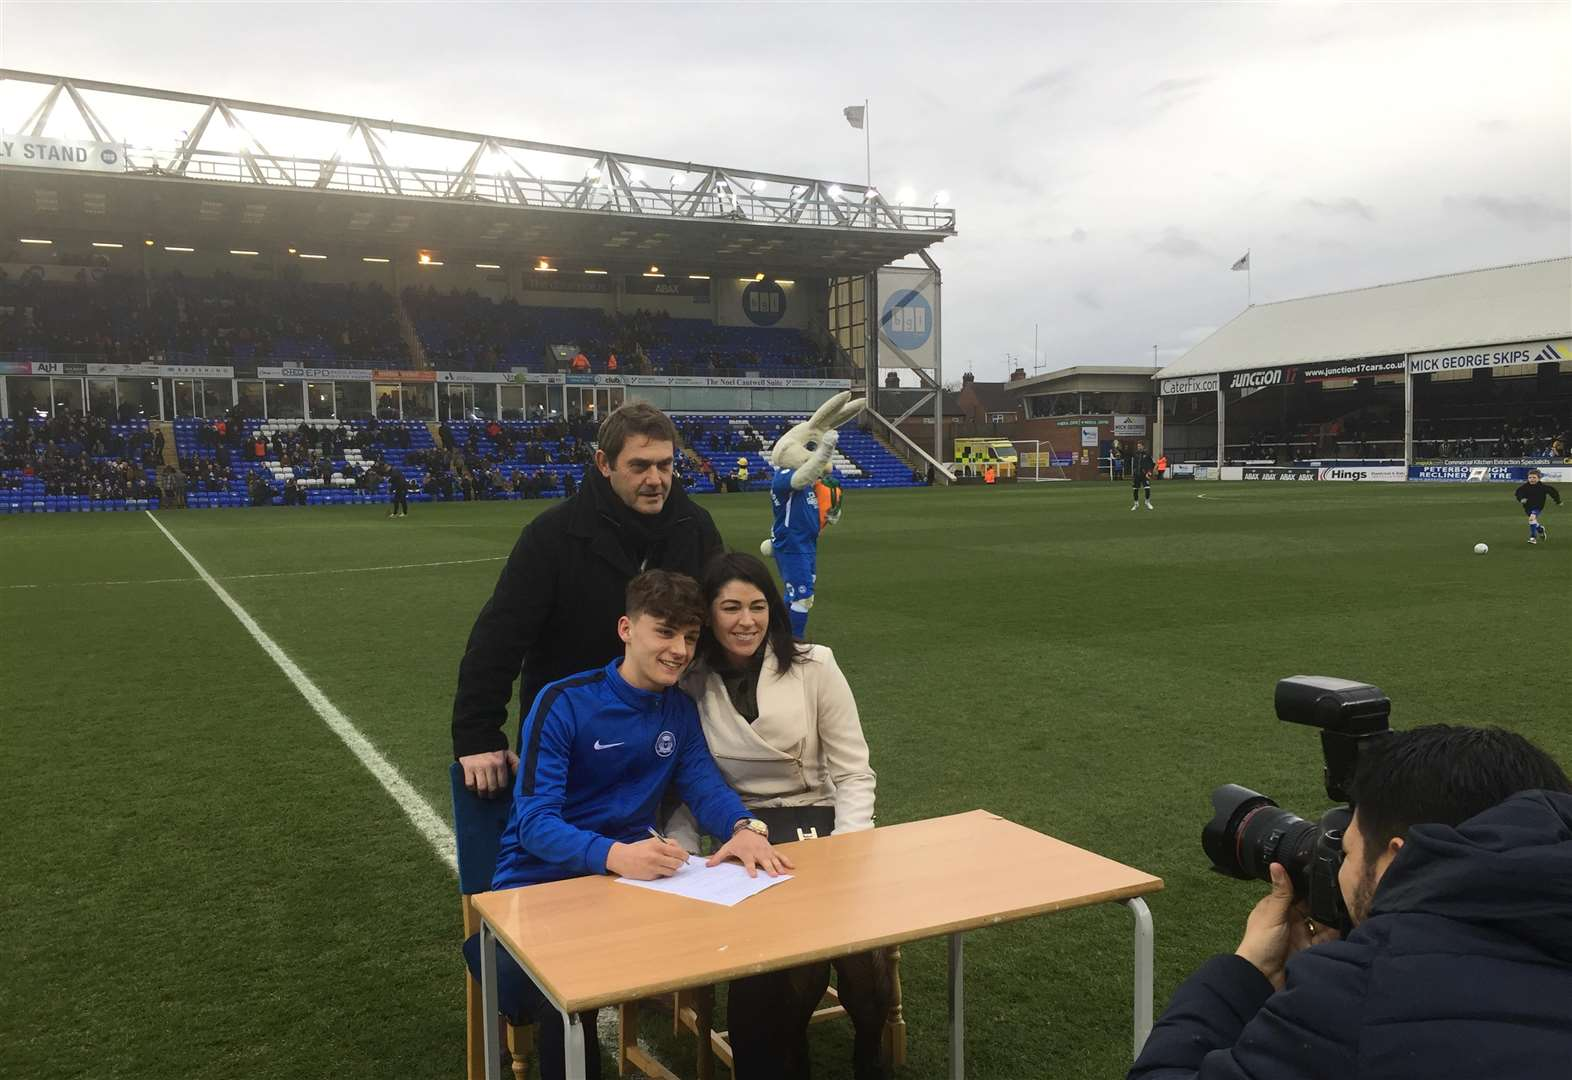 Wisbech youngster Harrison Burrows signs Peterborough United professional contract at ABAX Stadium ahead of Rochdale League One game as perfect birthday present